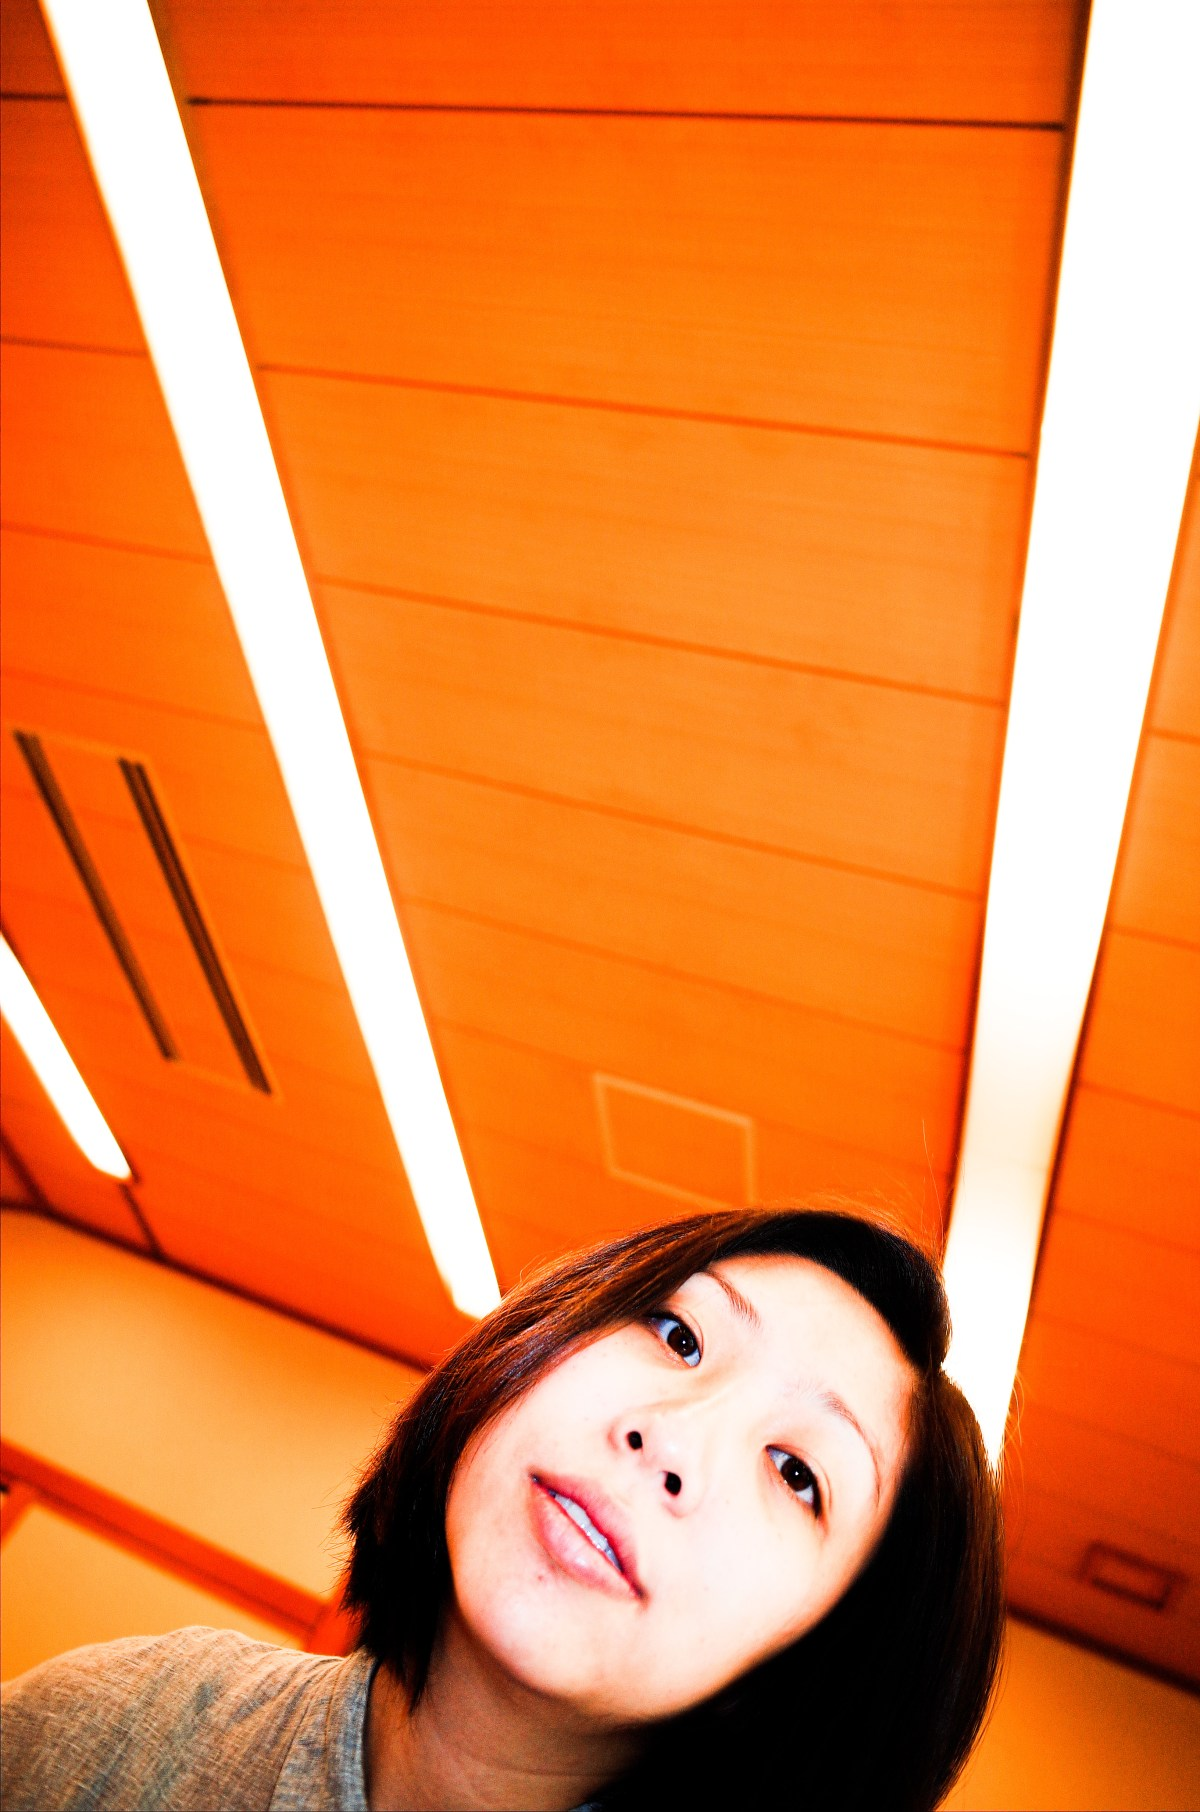 Portrait of Cindy, shot from a super-low angle with 28mm on RICOH GR II. Uji, Kyoto 2017. Note the leading lines in the top of the frame.